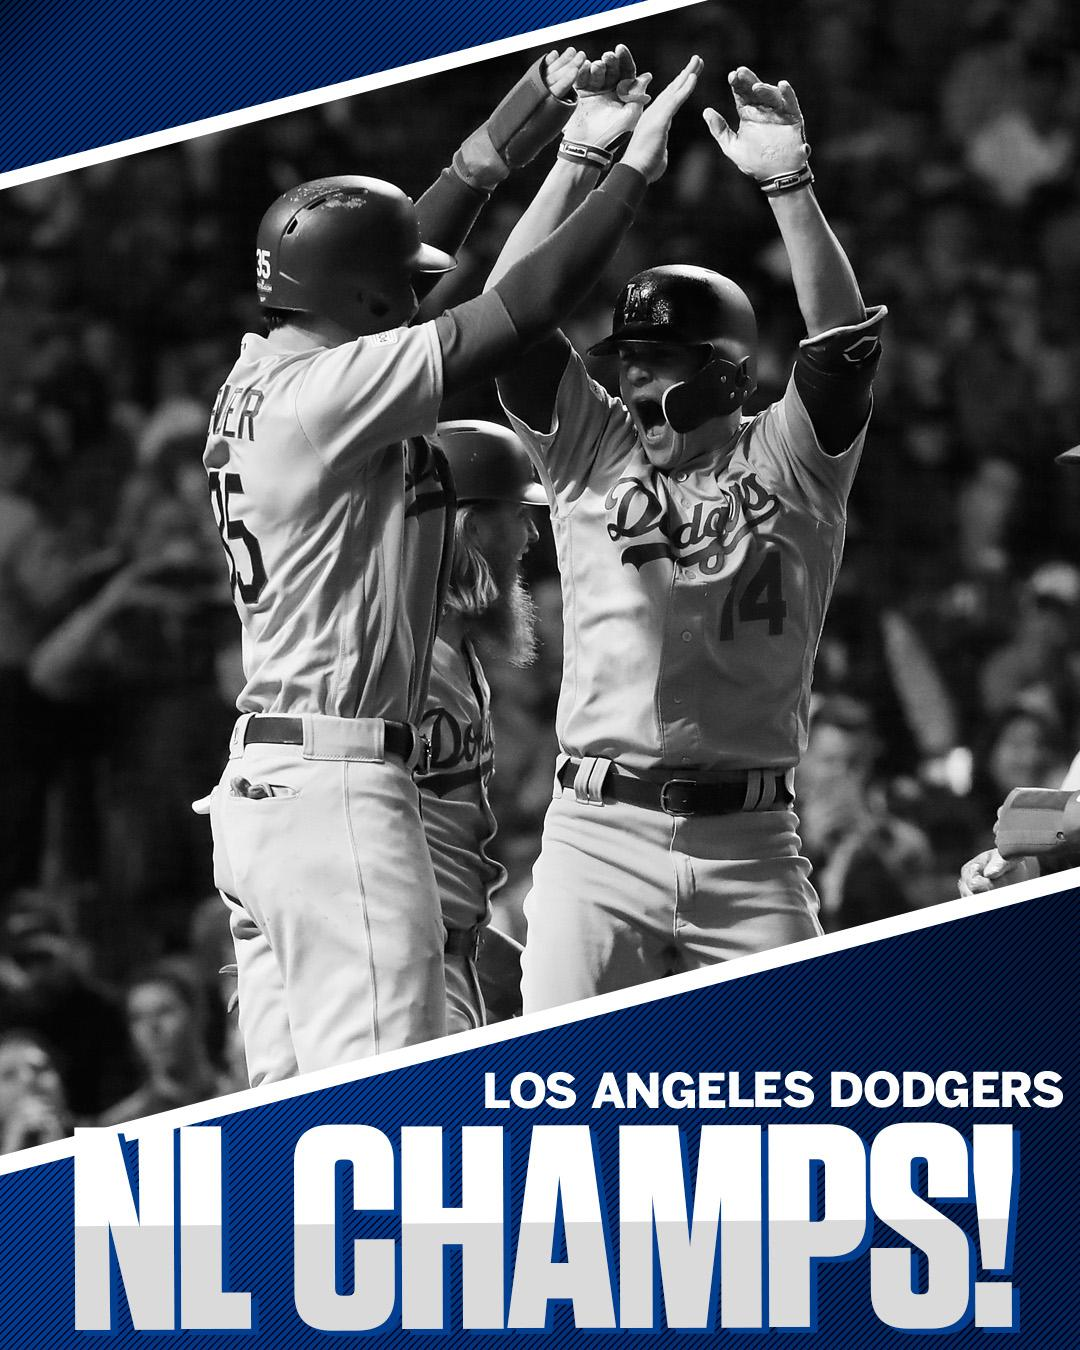 The 29-year wait is over.  The Dodgers are back in the World Series! https://t.co/rtAf5kASfr